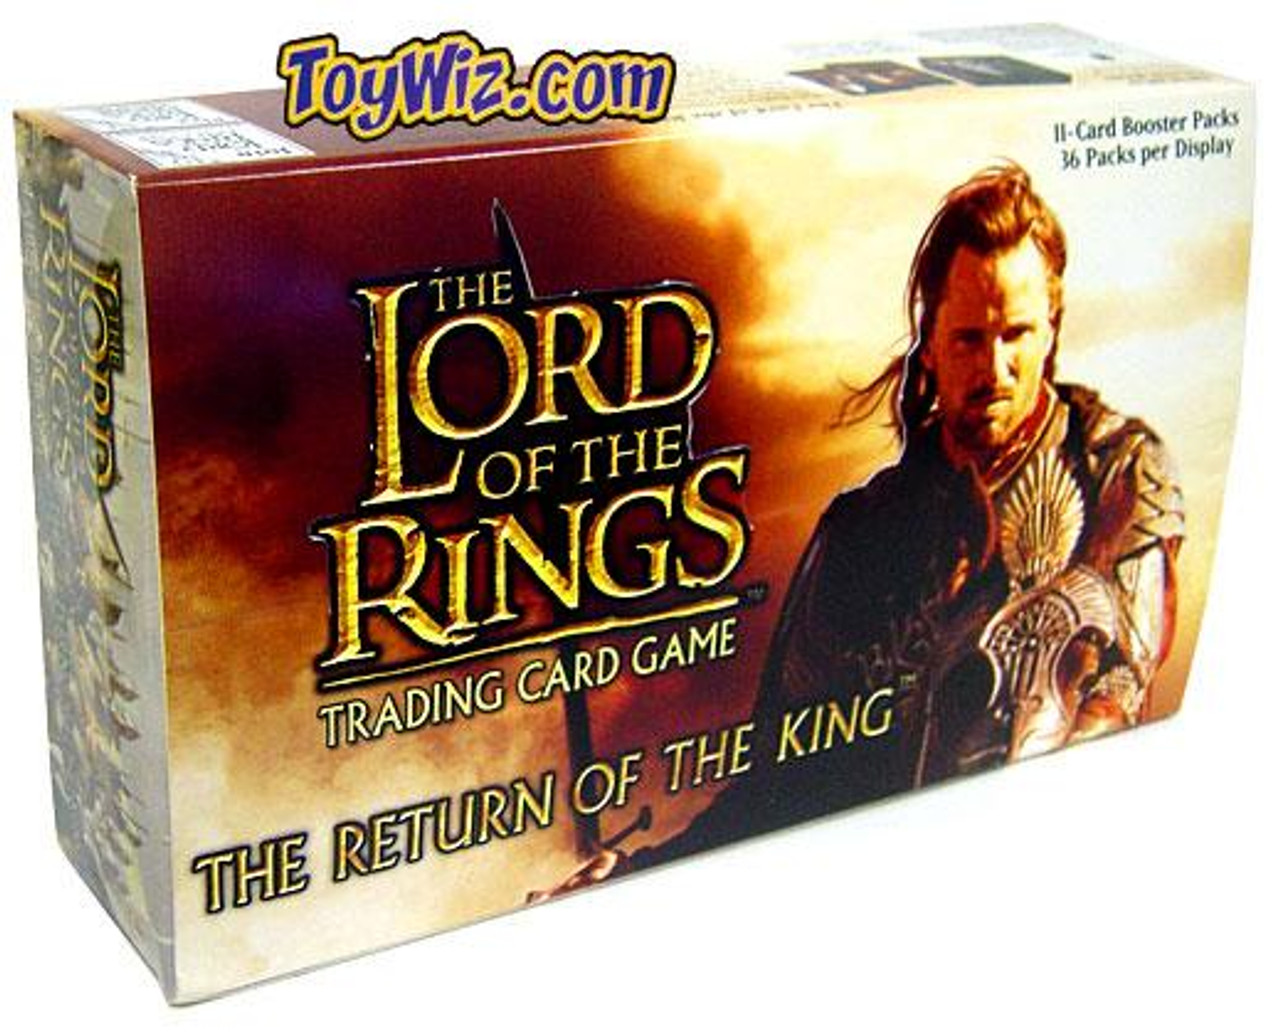 The Lord of the Rings Trading Card Game Return of the King Booster Box